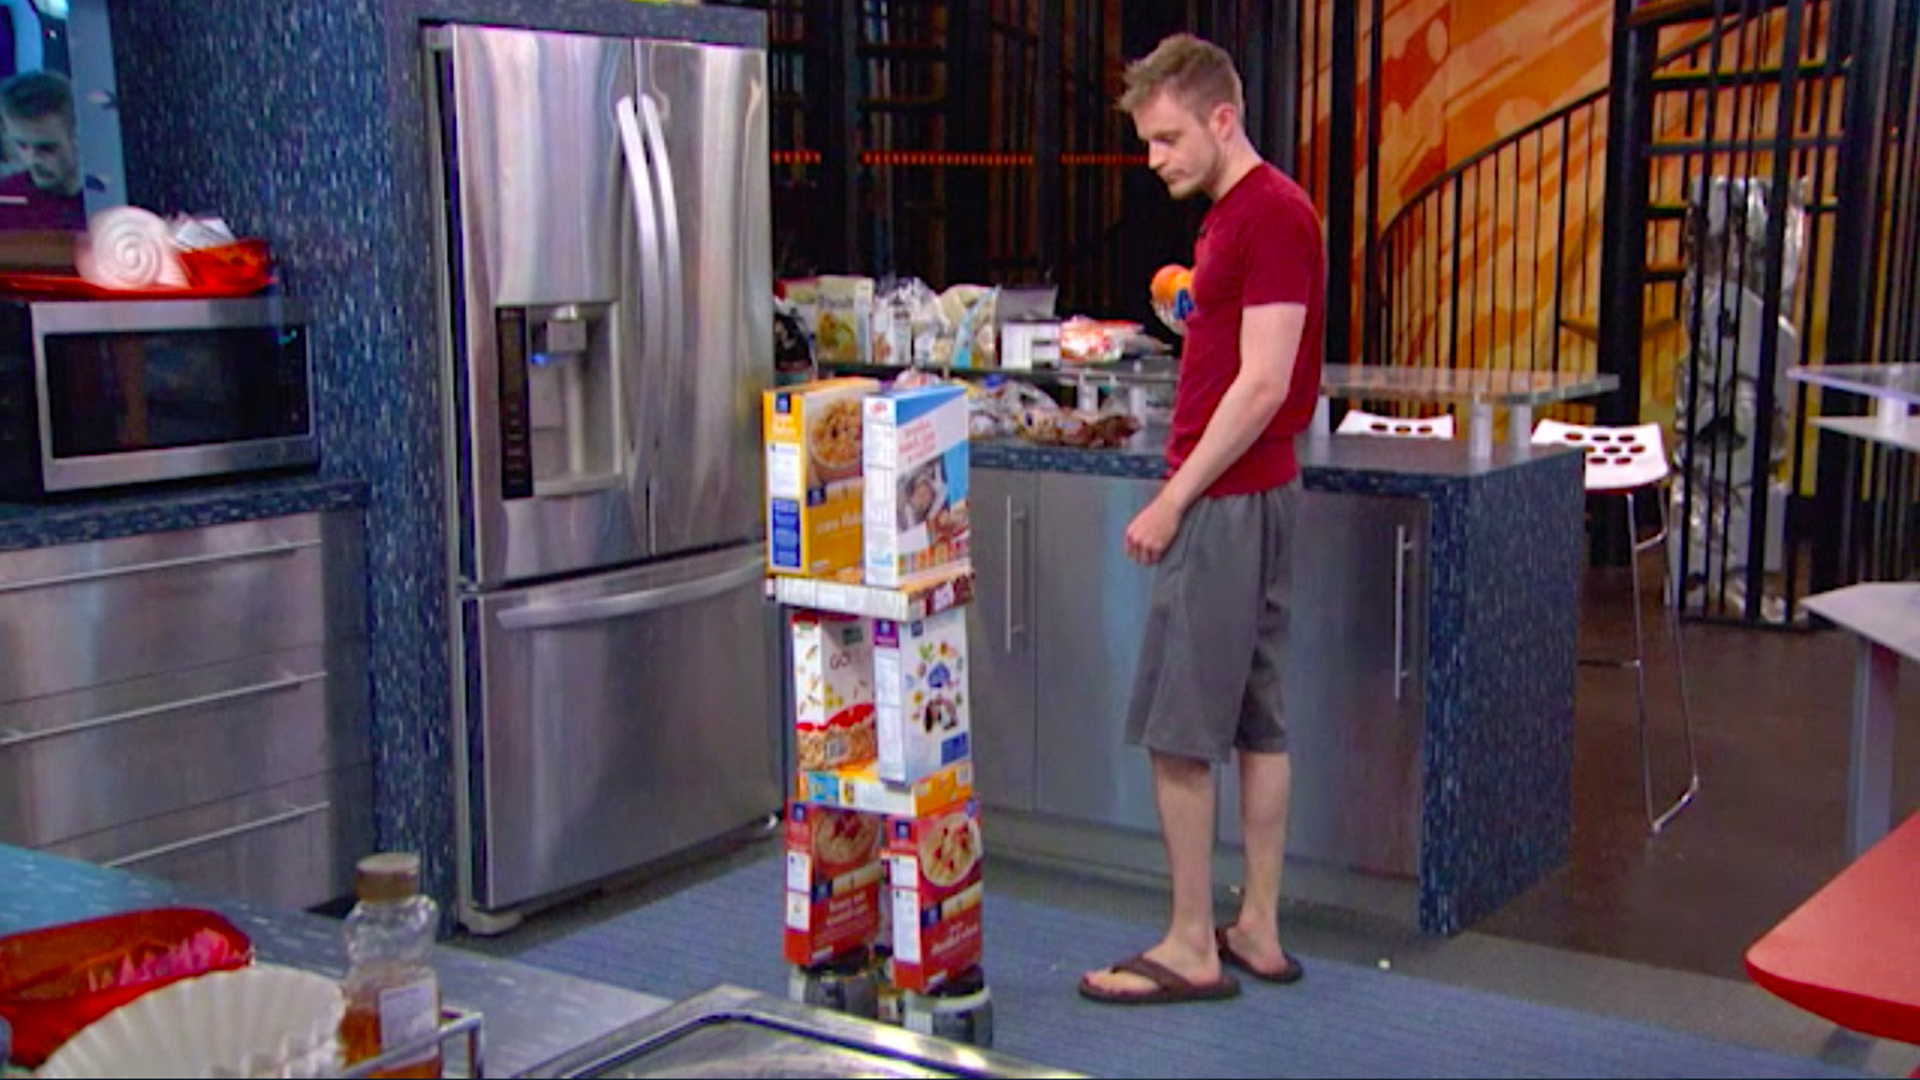 11. Johnny Mac stacks cereal boxes in the kitchen.